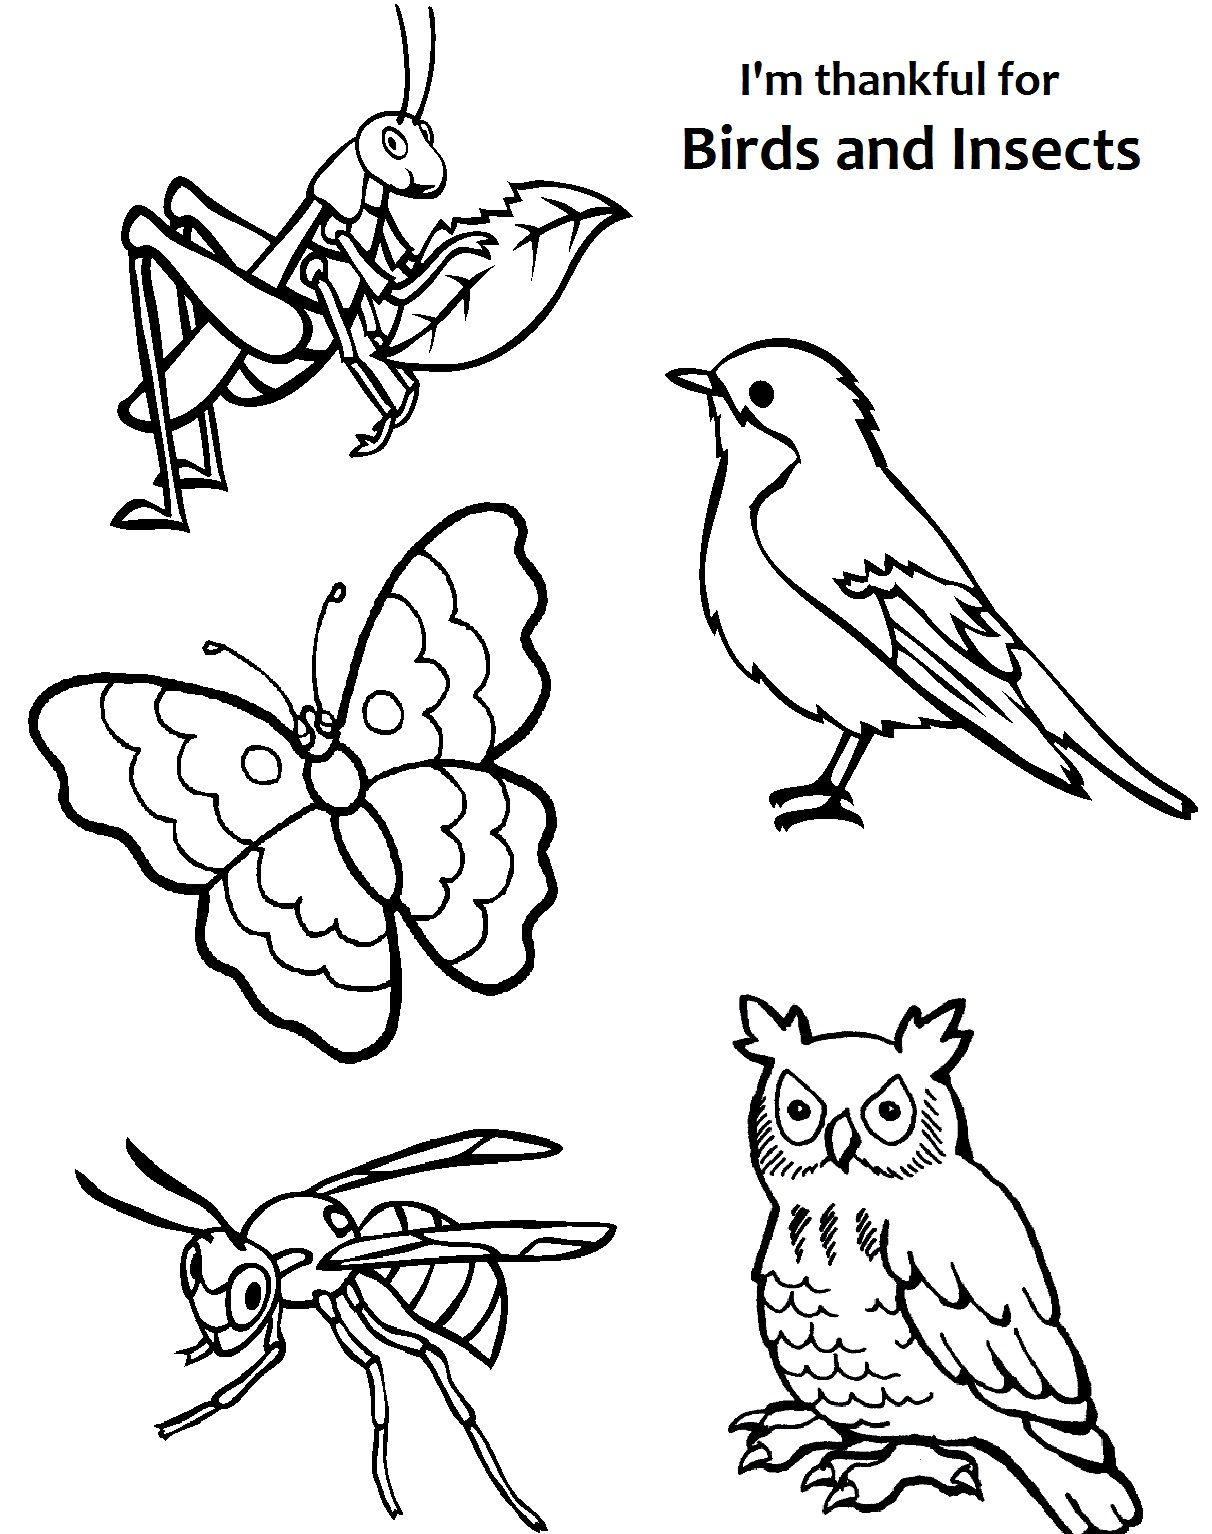 I Am Thankful For Birds And Insects Coloring Page.